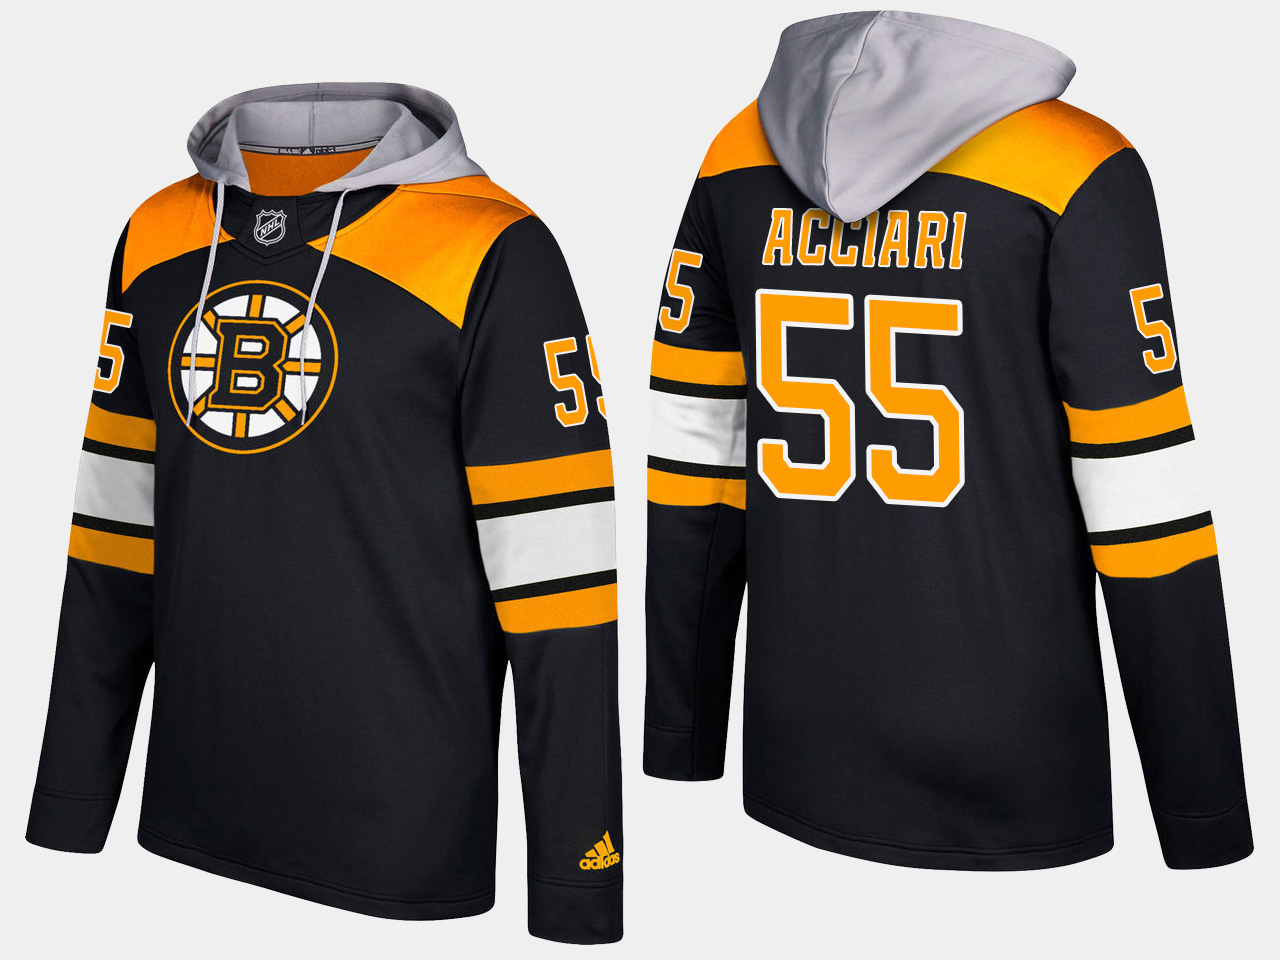 Men NHL Boston bruins 55 noel acciari black hoodie